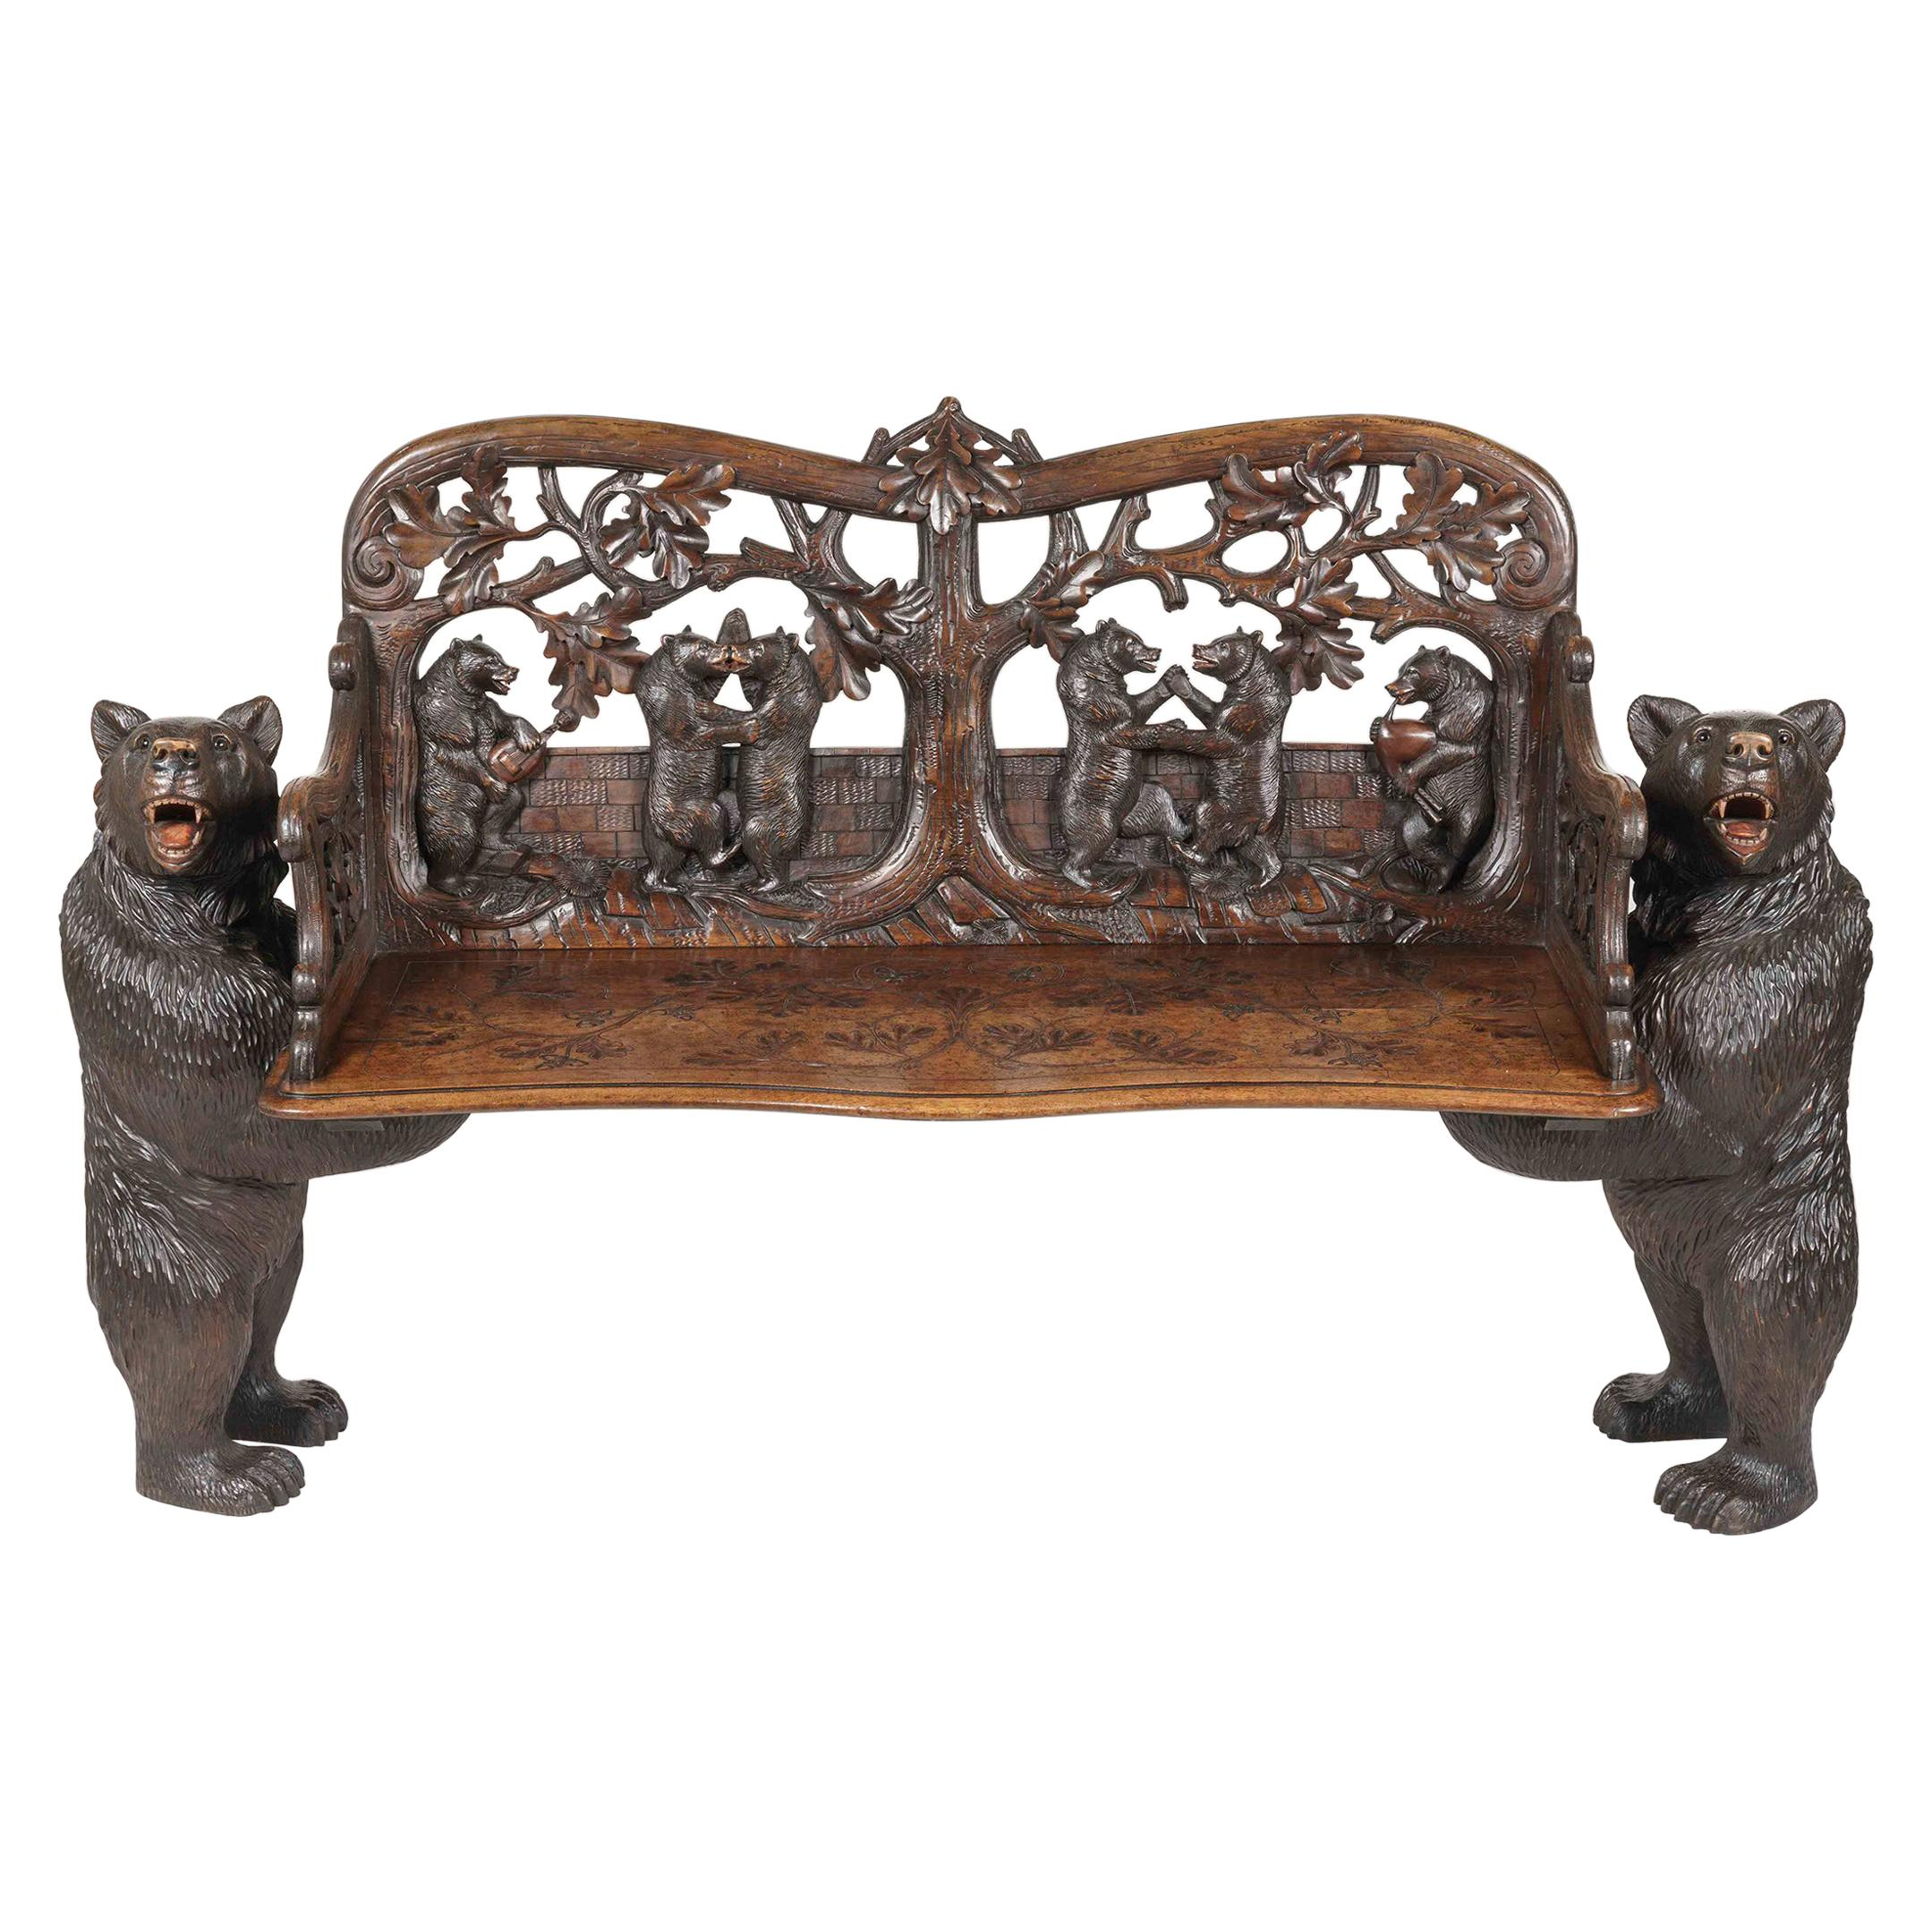 19th Century 'Black Forest' Carved Bear Bench